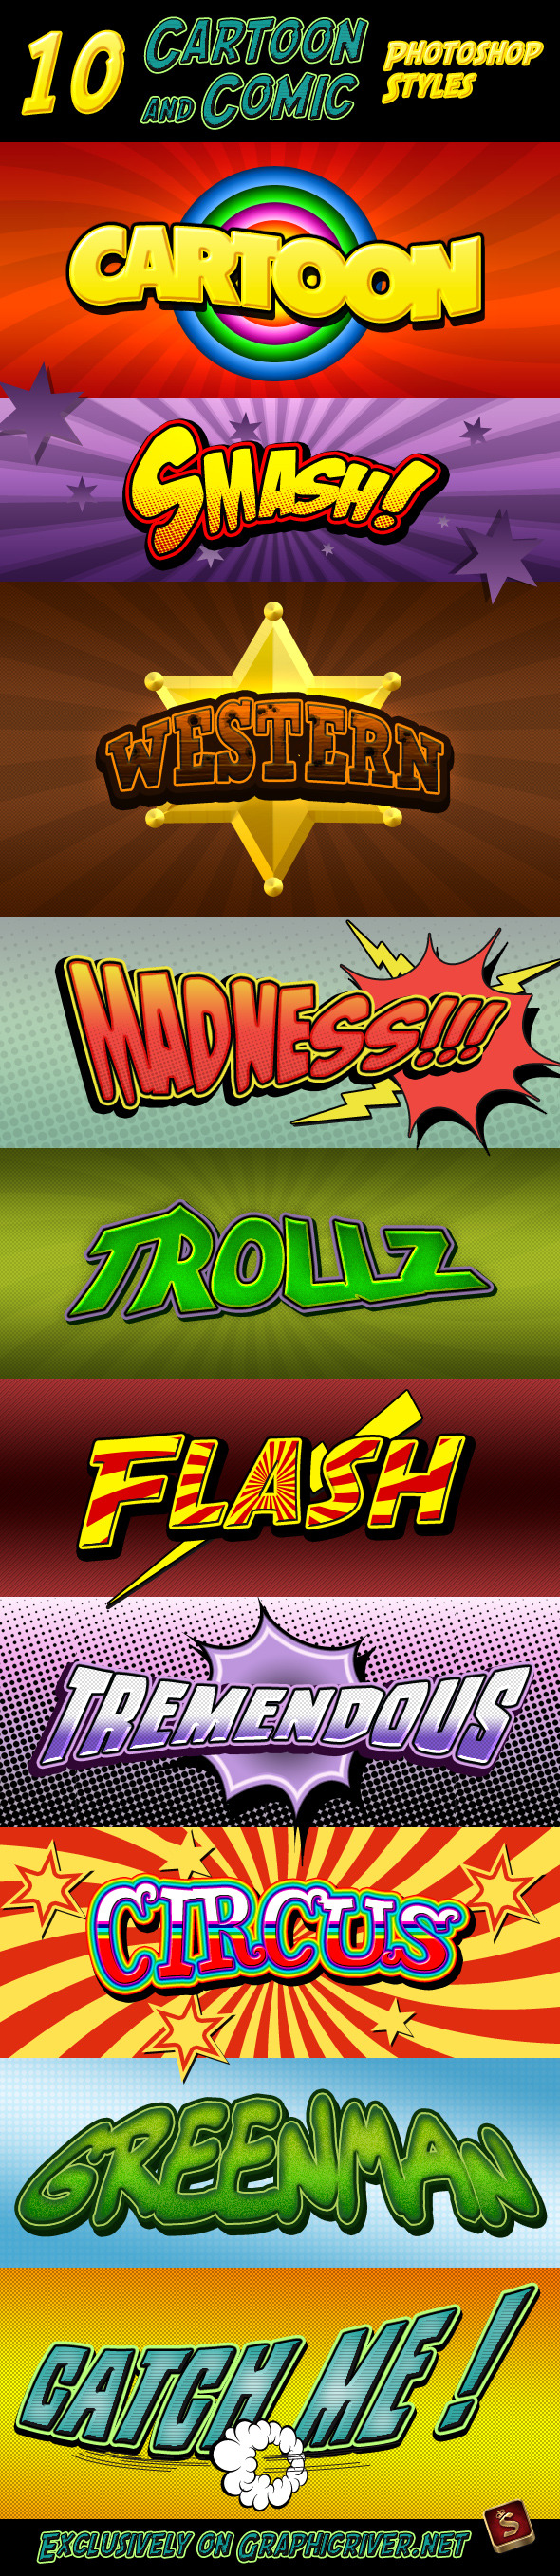 Cartoon and Comic Book Styles - Text Effects Styles